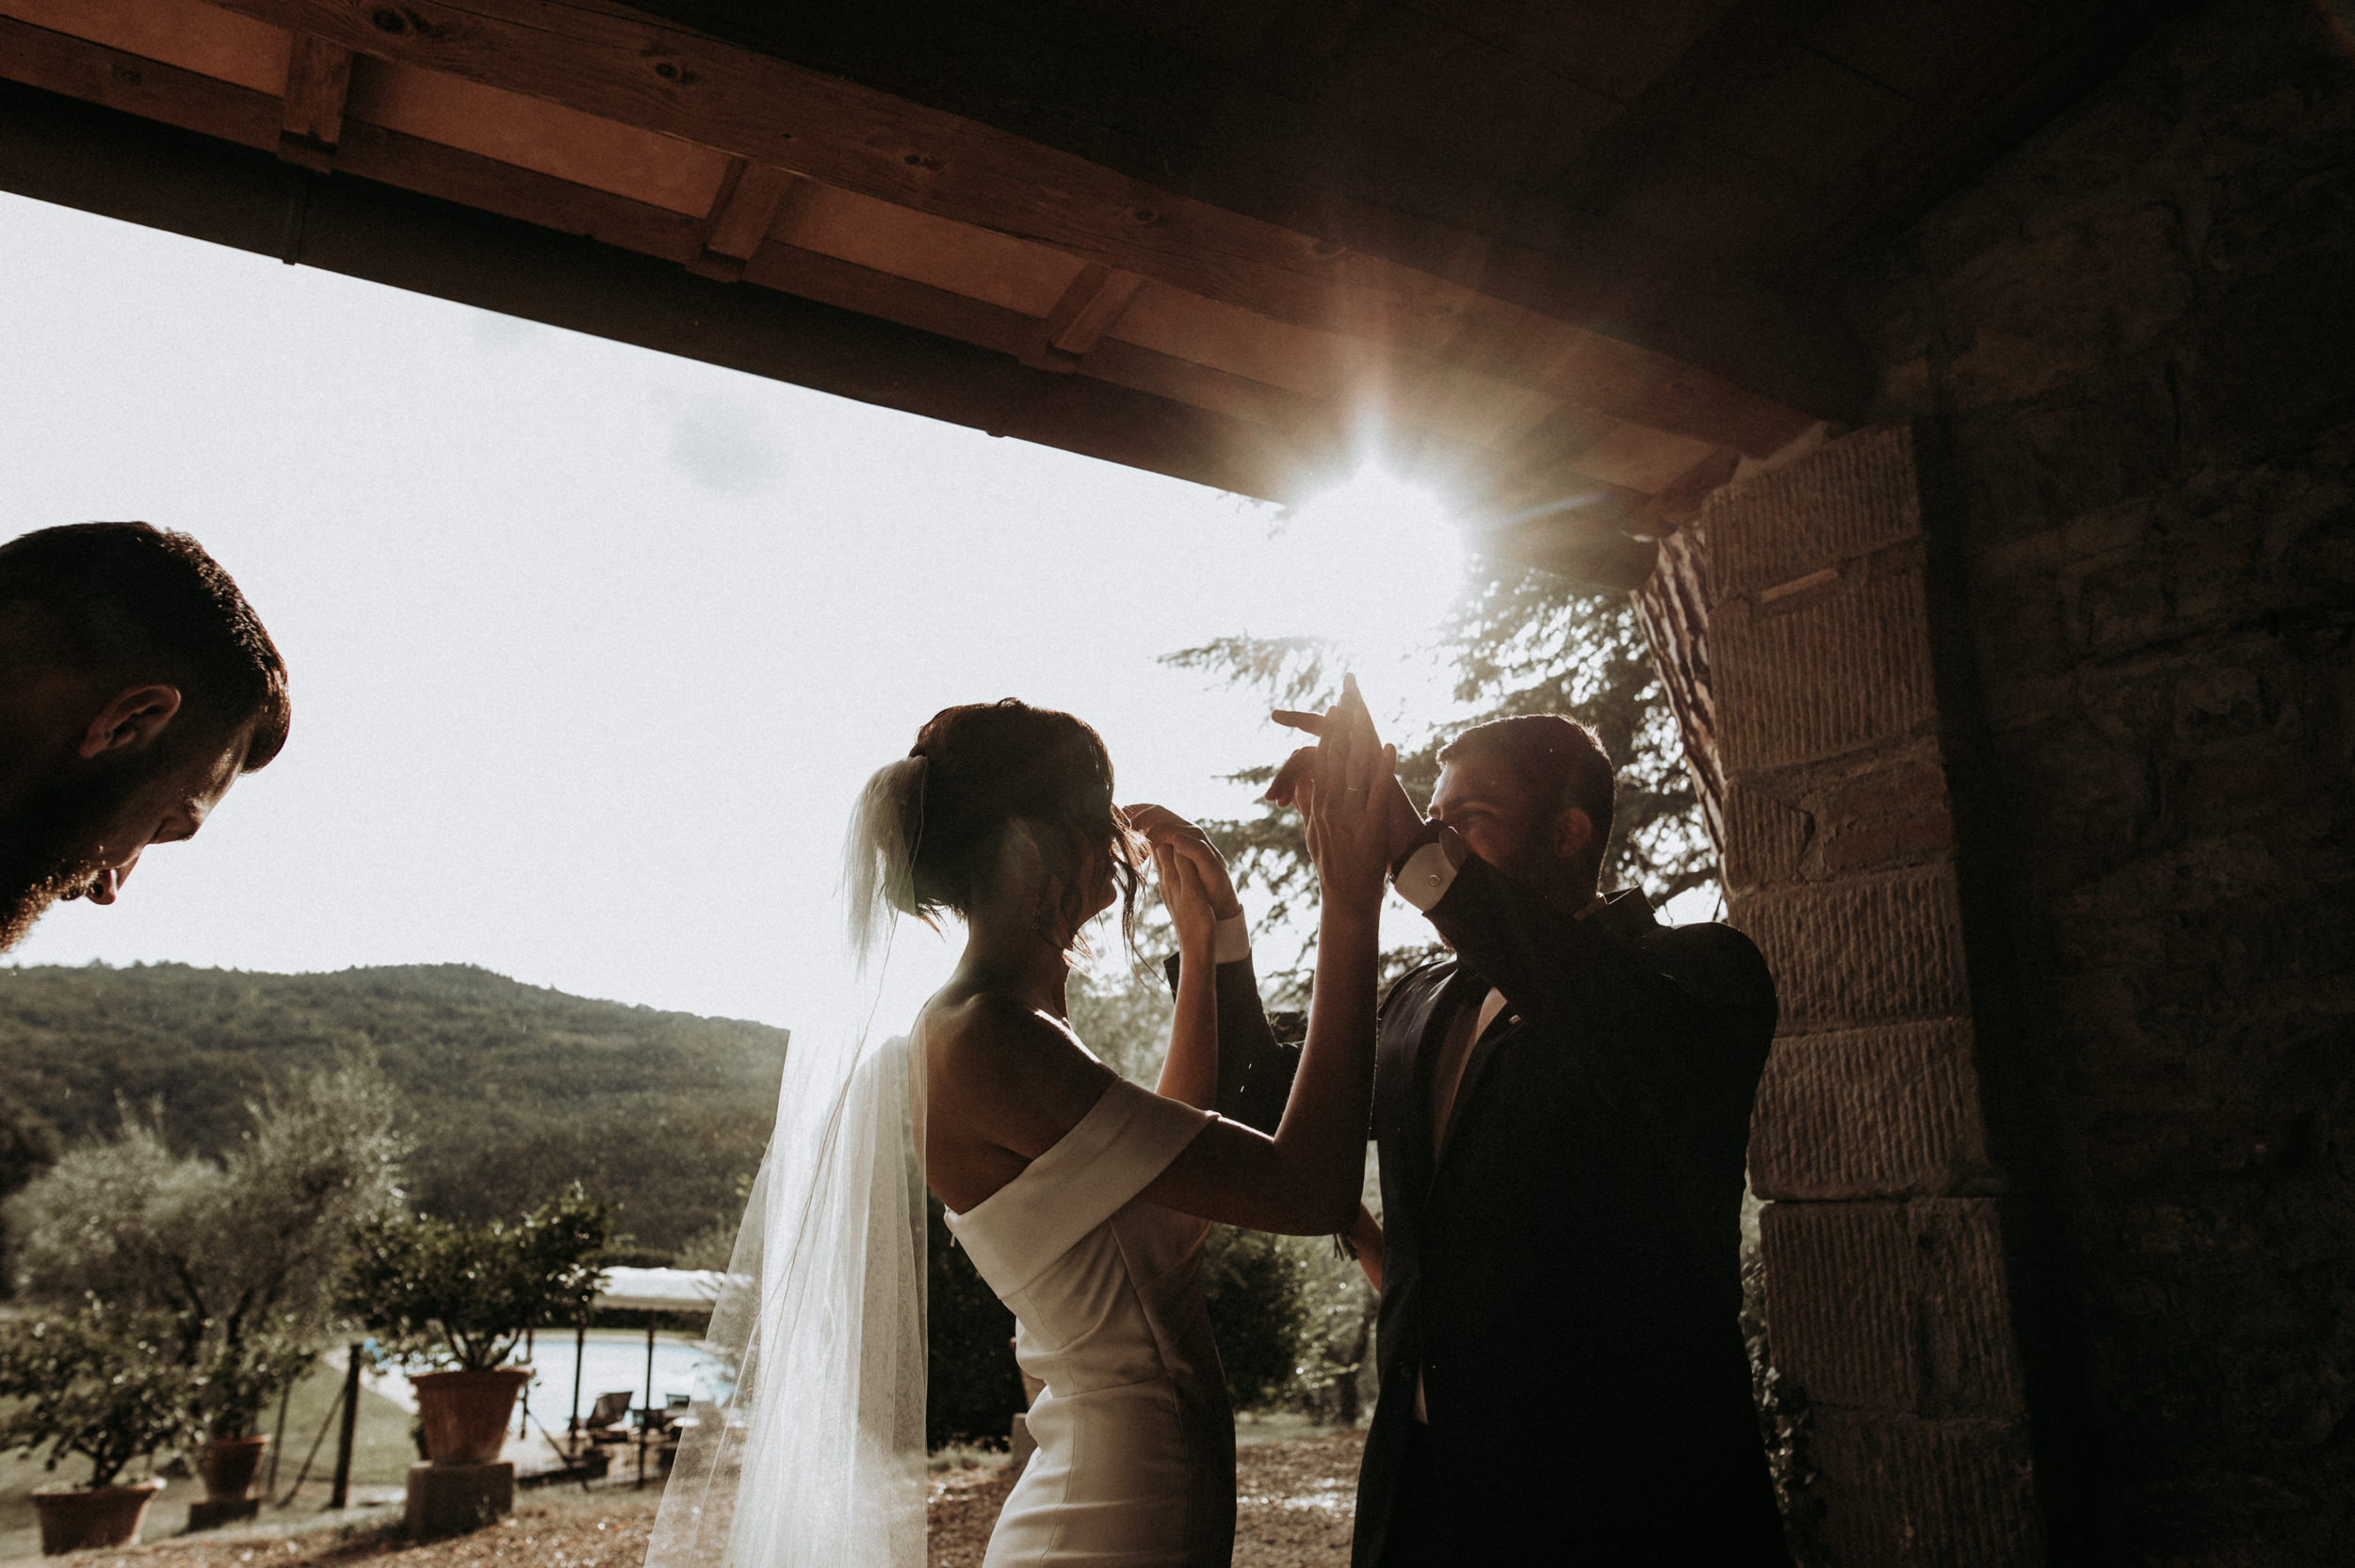 dm_photography_KW_Tuscanyweddingday_271